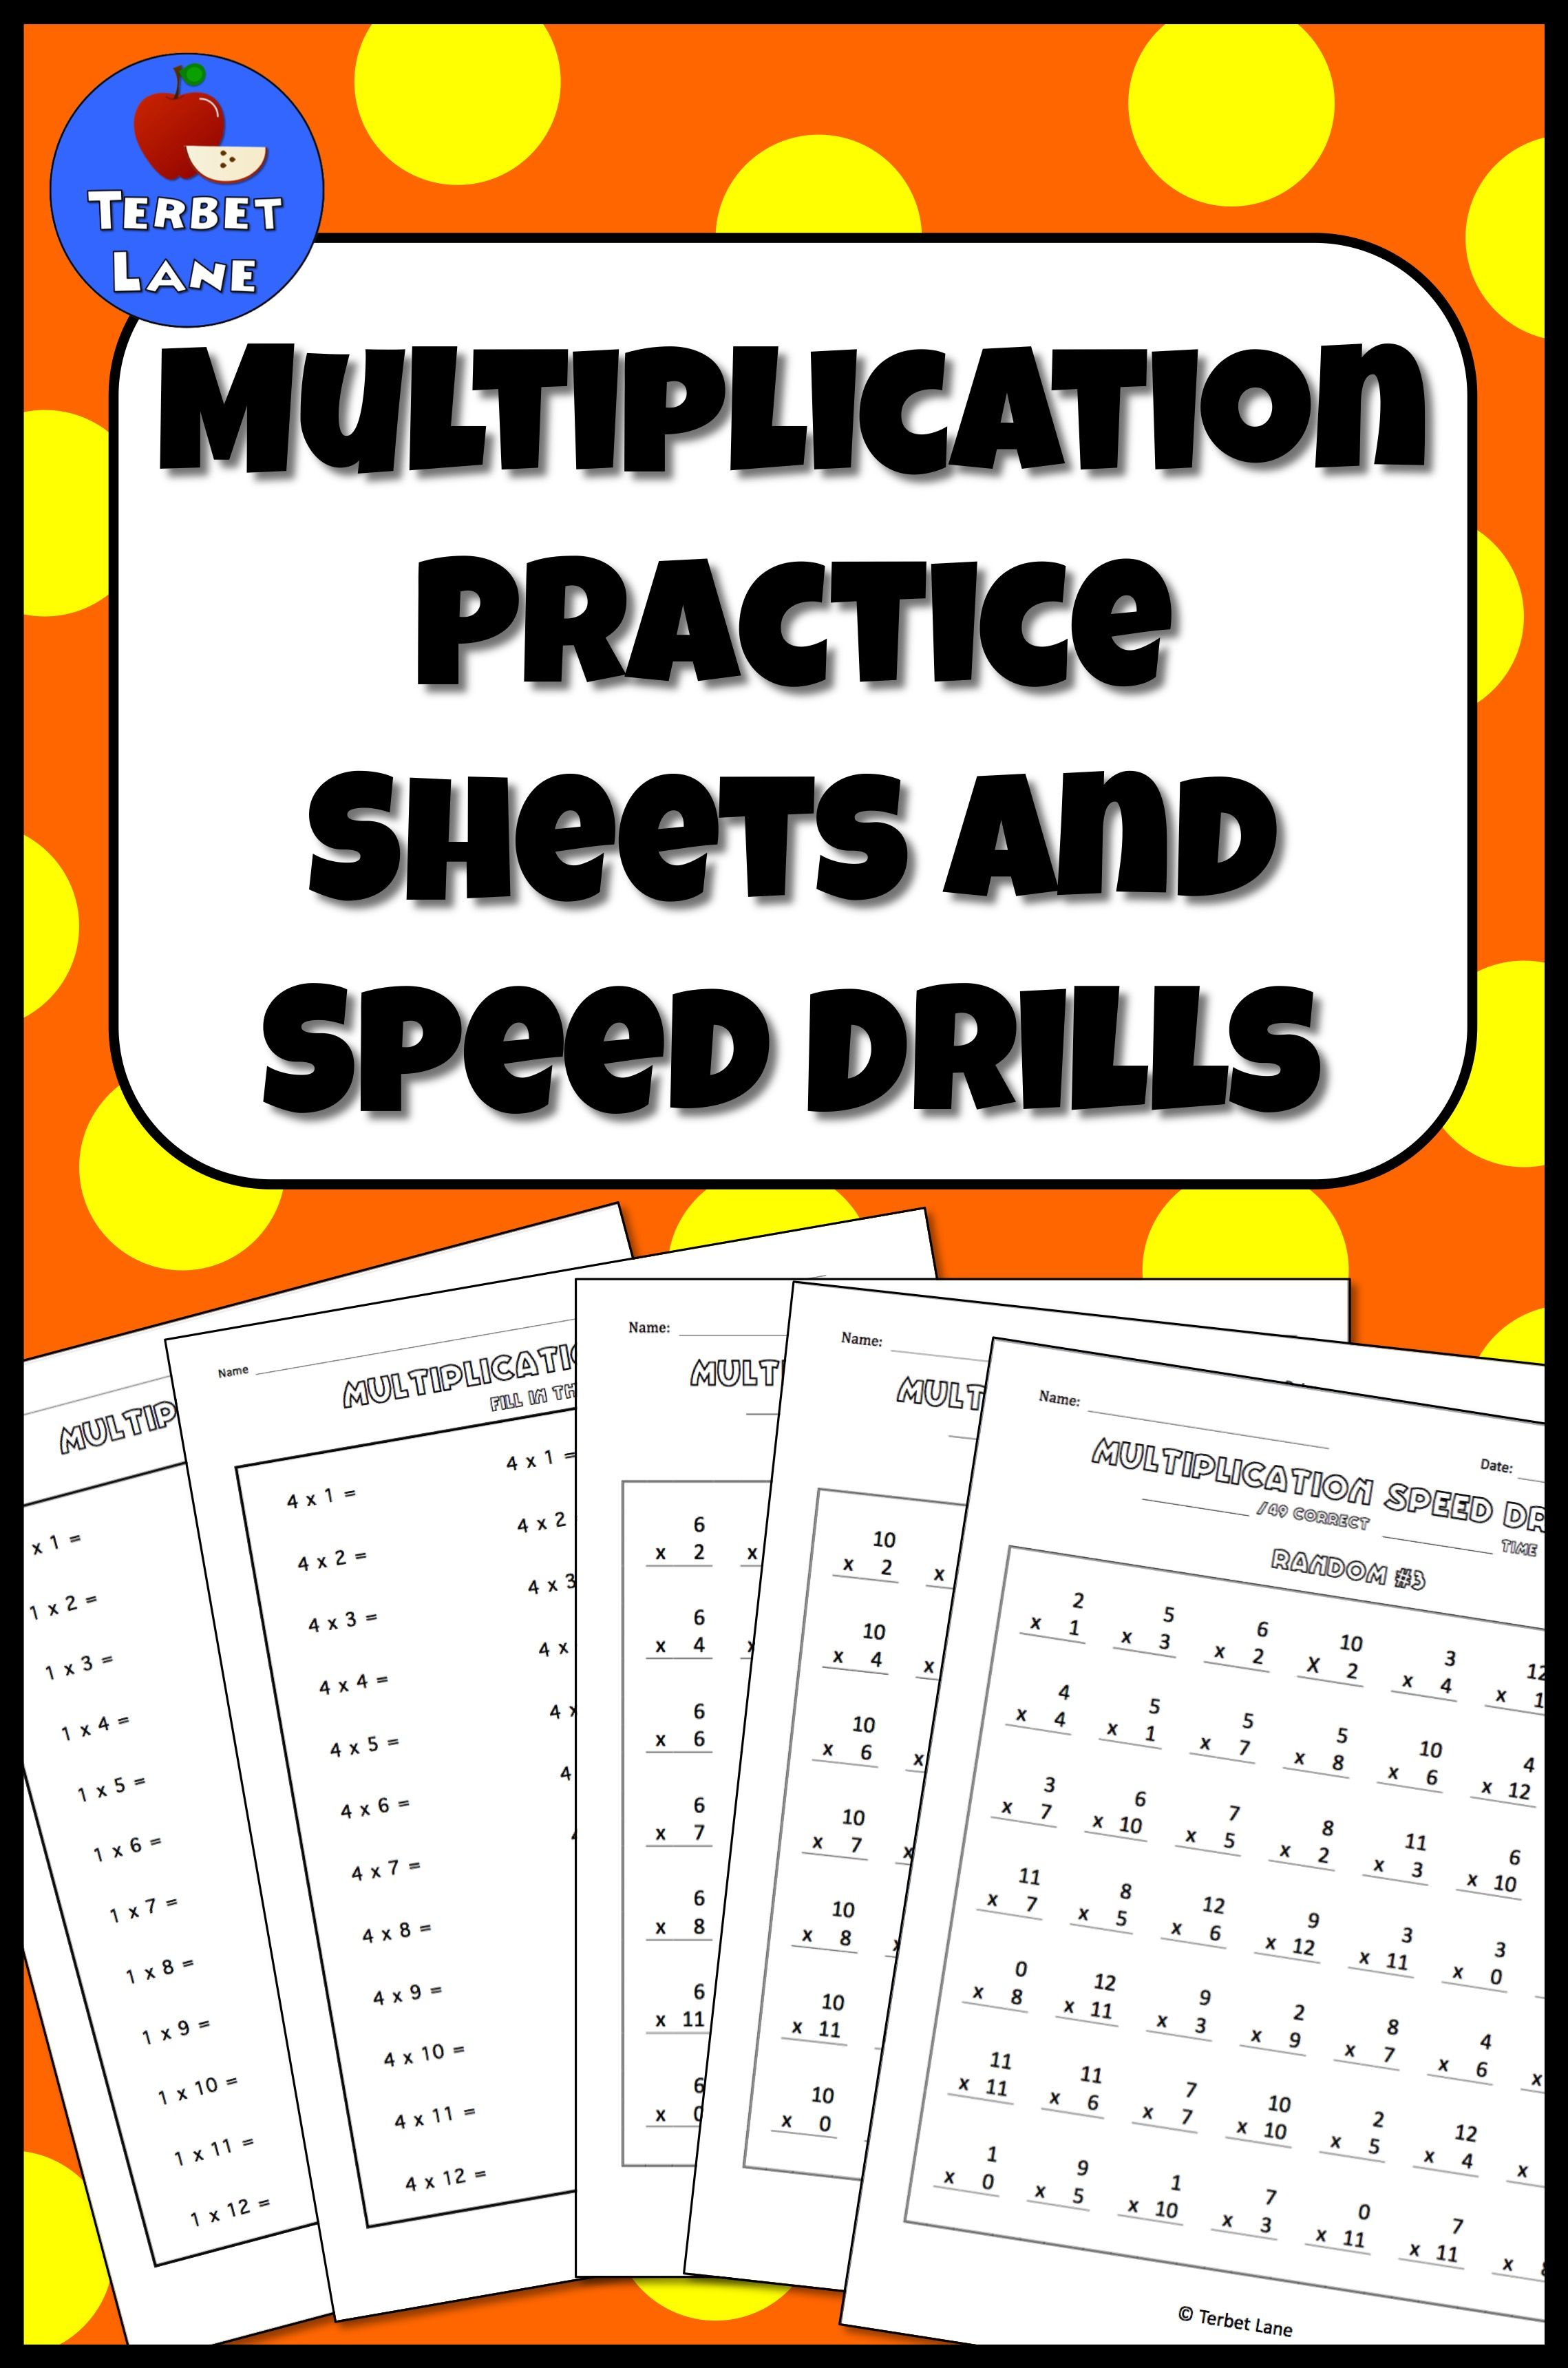 Print And Go Multiplication Practice Sheets And Speed